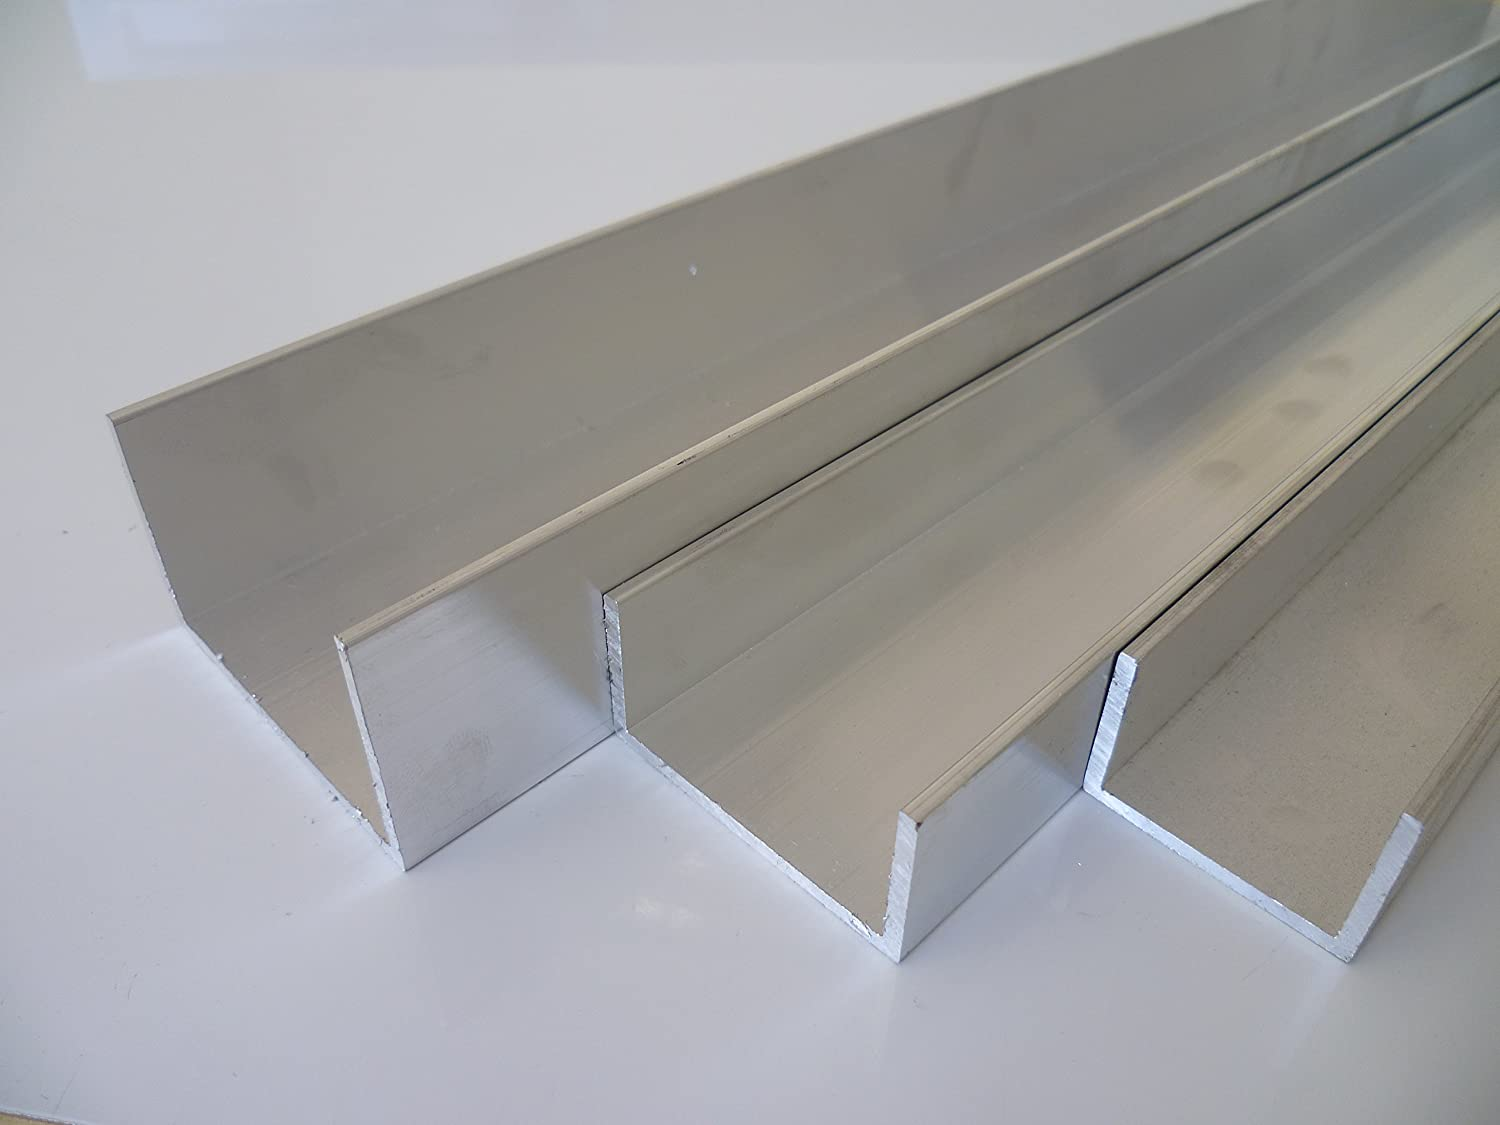 B & D Metal Aluminium U Profile 25  x 25  x 3  mm, gsi0,5  ° F22  Schweissbar Suitable for Anodising Length Approx. 2  m (+ 0/2000  mm  –   3  mm) B&T